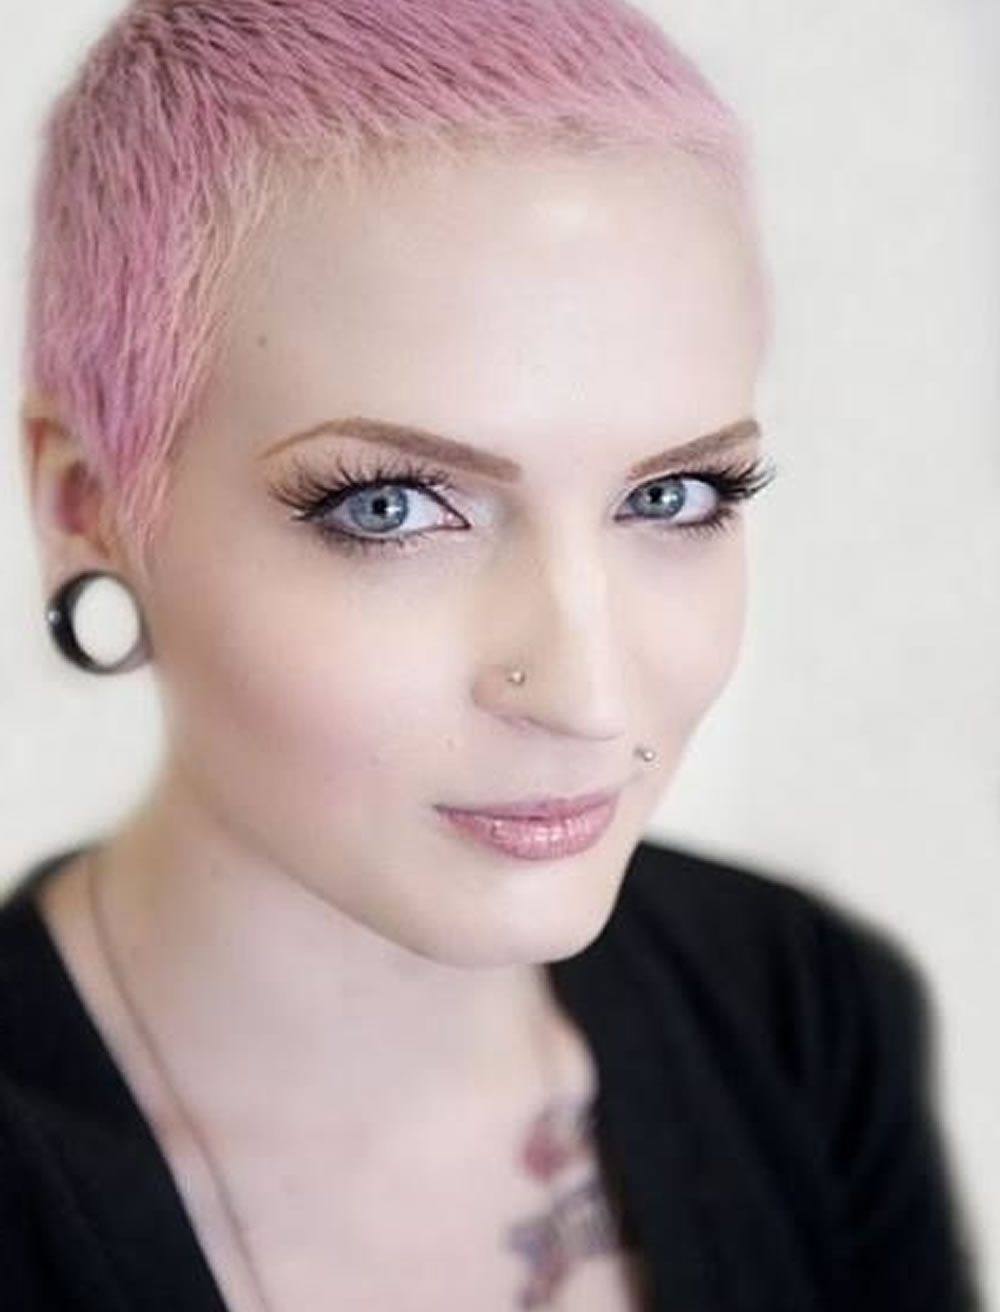 Trend Pixie Haircuts For Thick Hair 2018 2019 : 28 Terrific Pixie Pertaining To Recent Thick Hair Pixie Hairstyles (View 7 of 15)